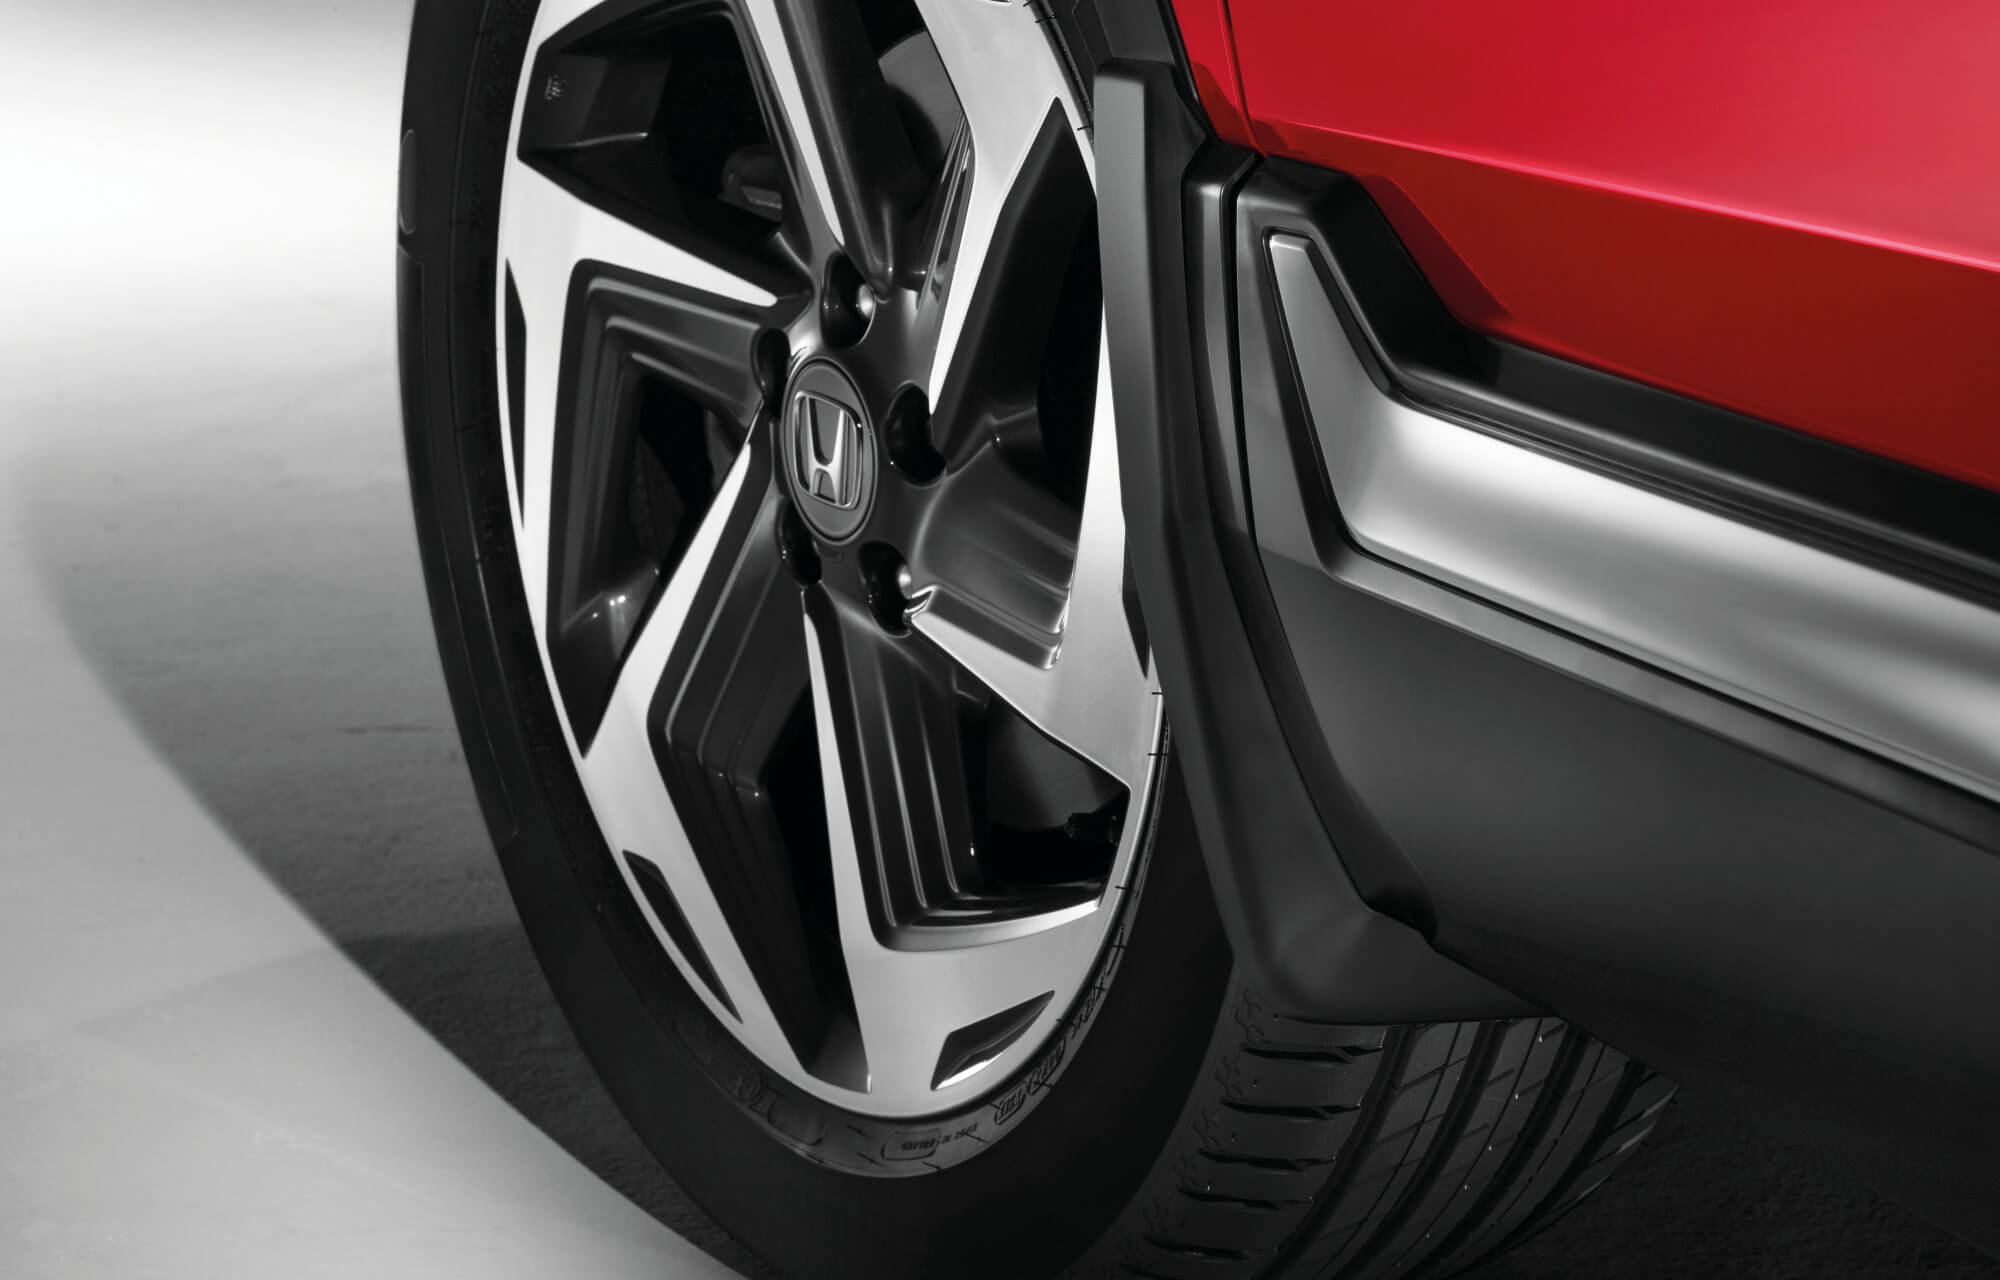 10% accessories at Bolands Honda Centre Waterford